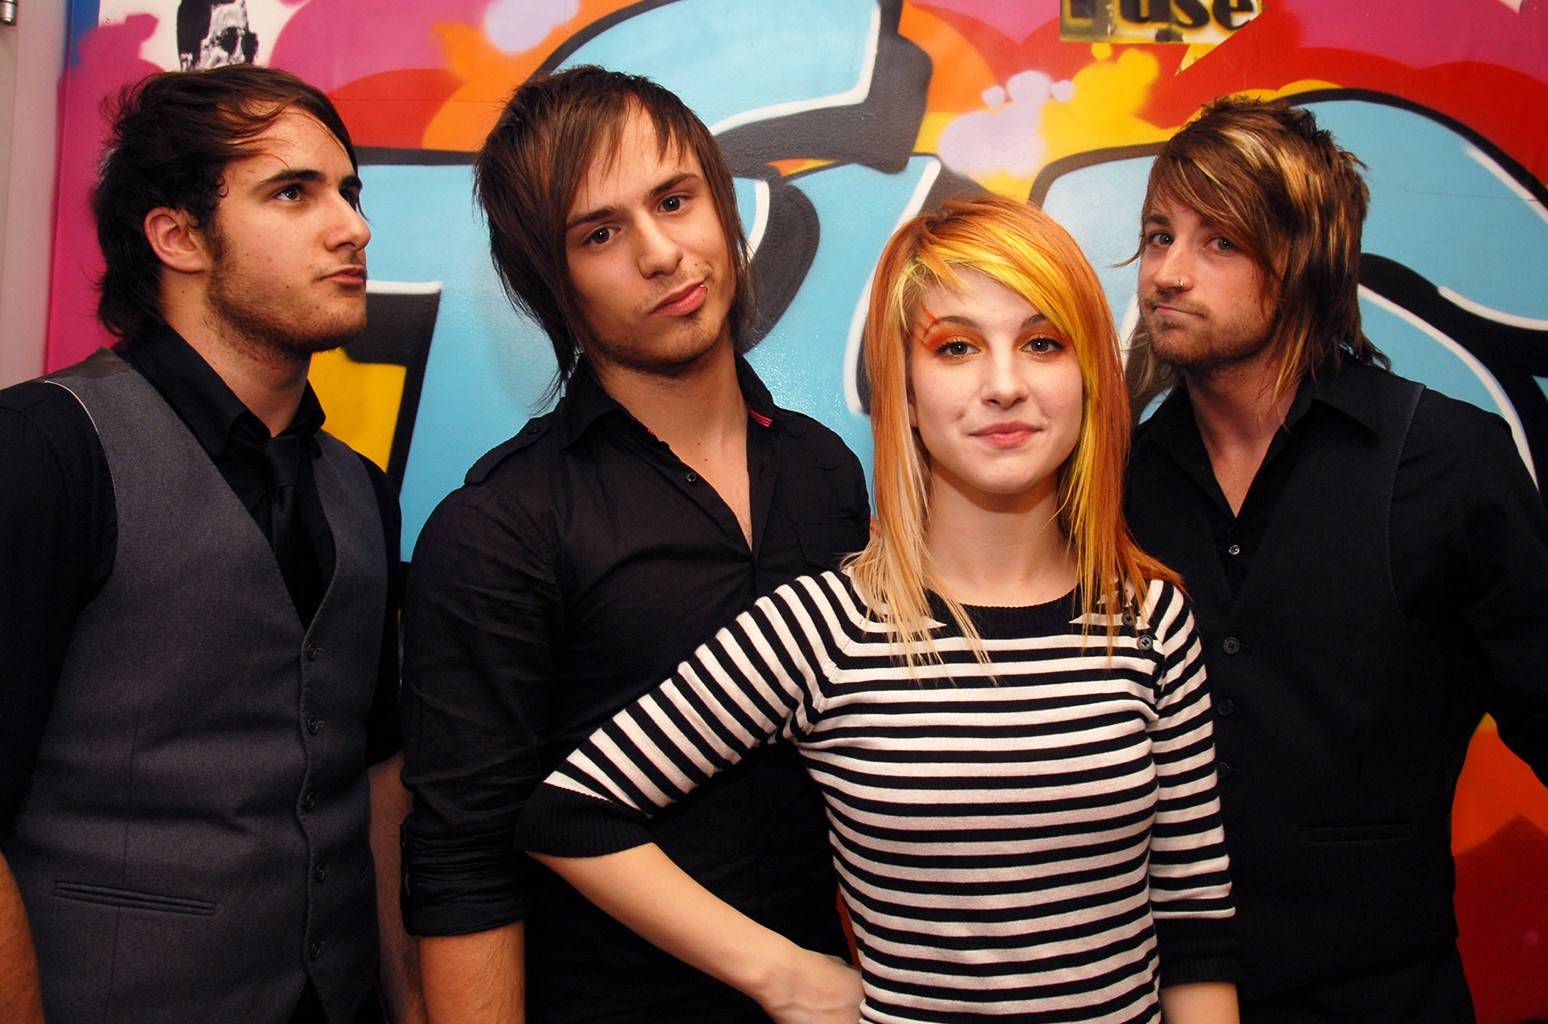 Paramore photographed in 2007